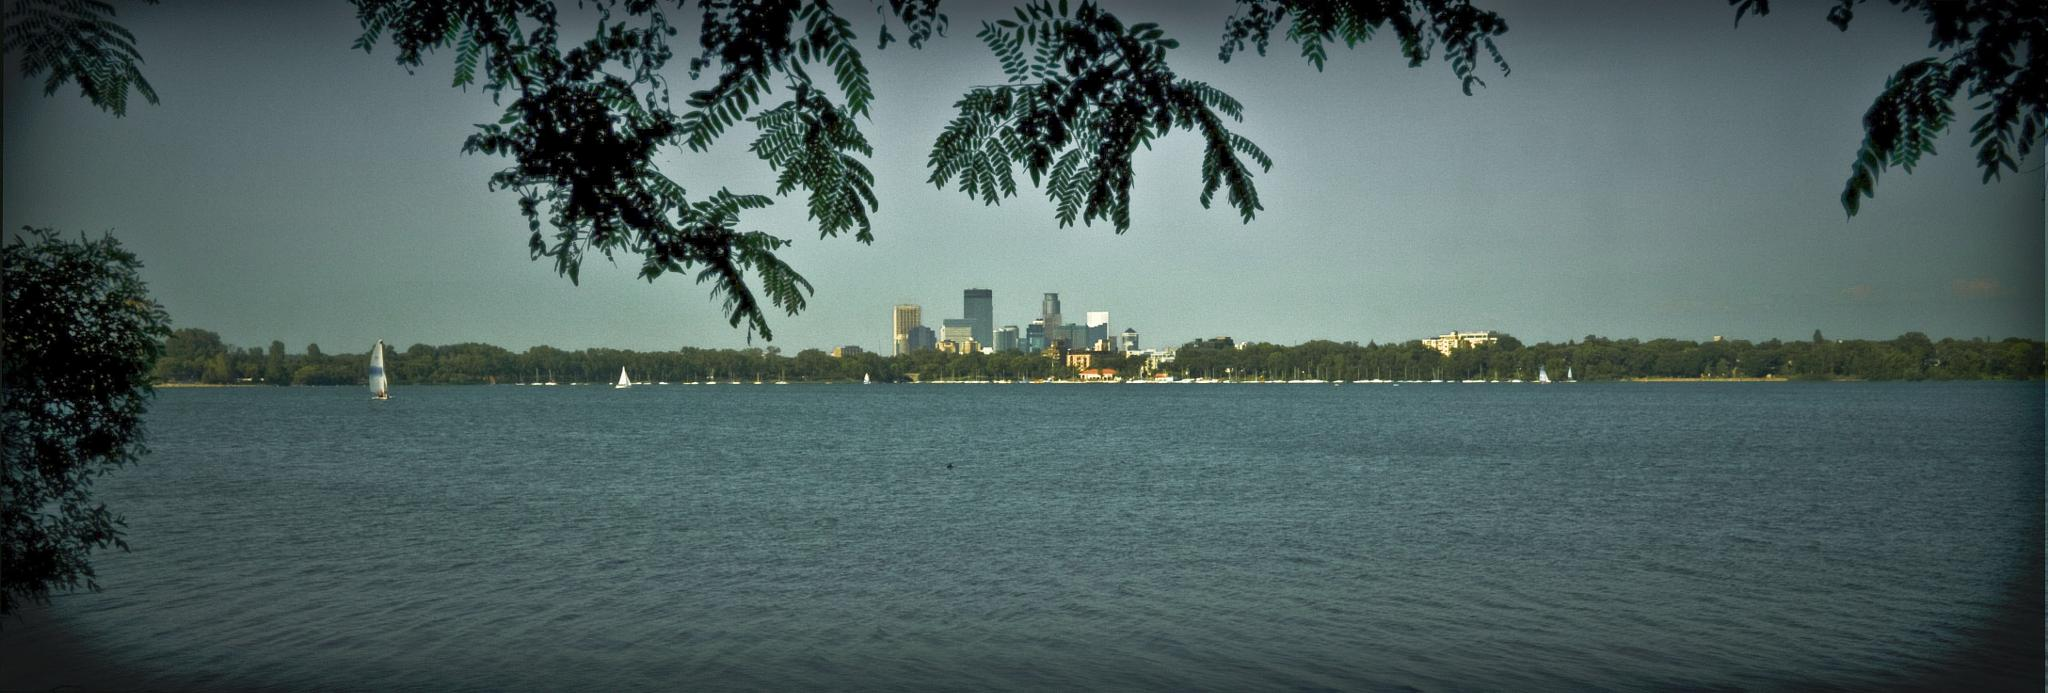 Lake Calhoun - city view from south shore by Robert Henry